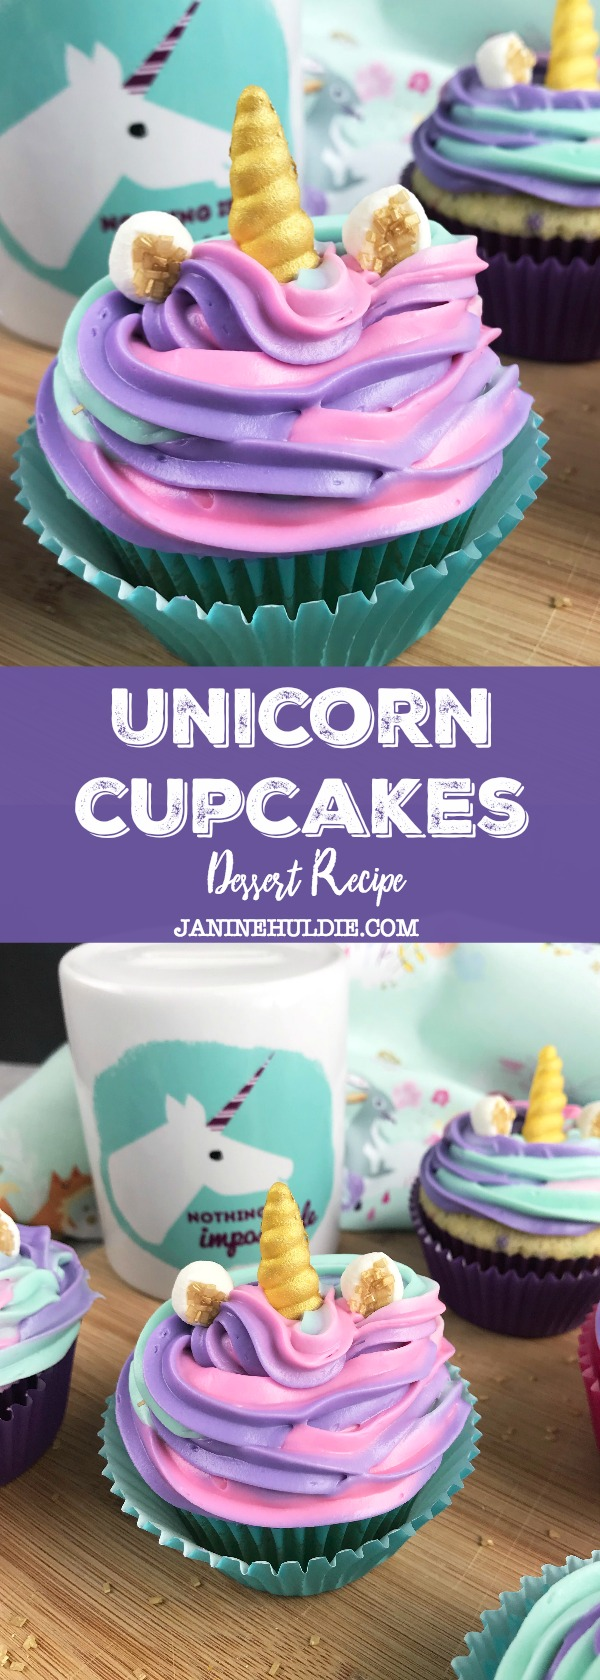 Unicorn Cupcakes Recipe